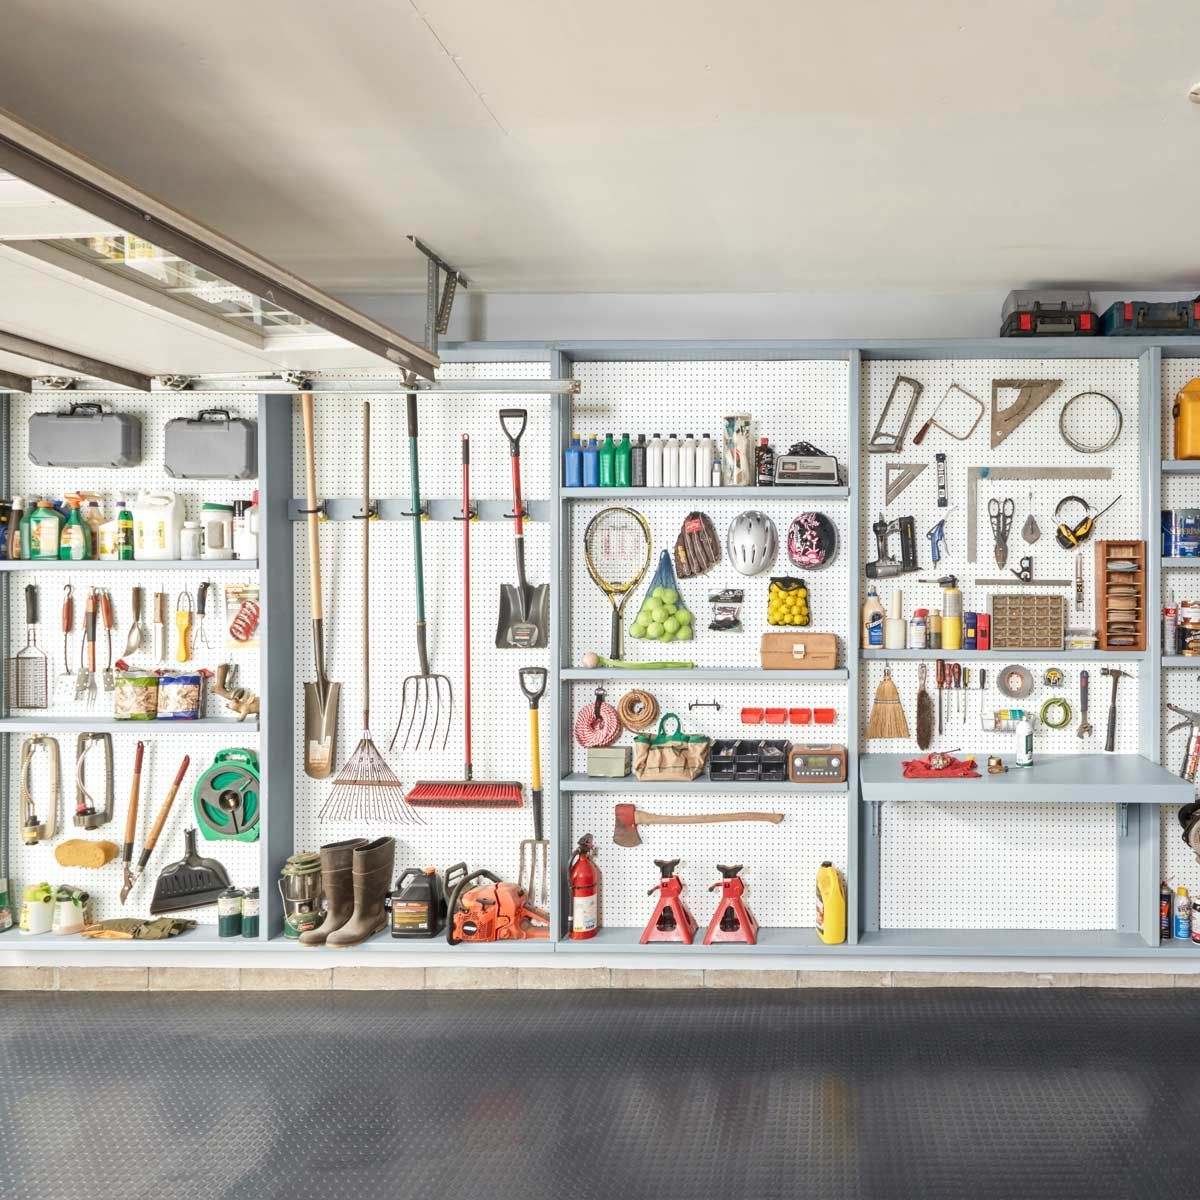 21 Top Tool Storage Tips, Tricks and Ideas